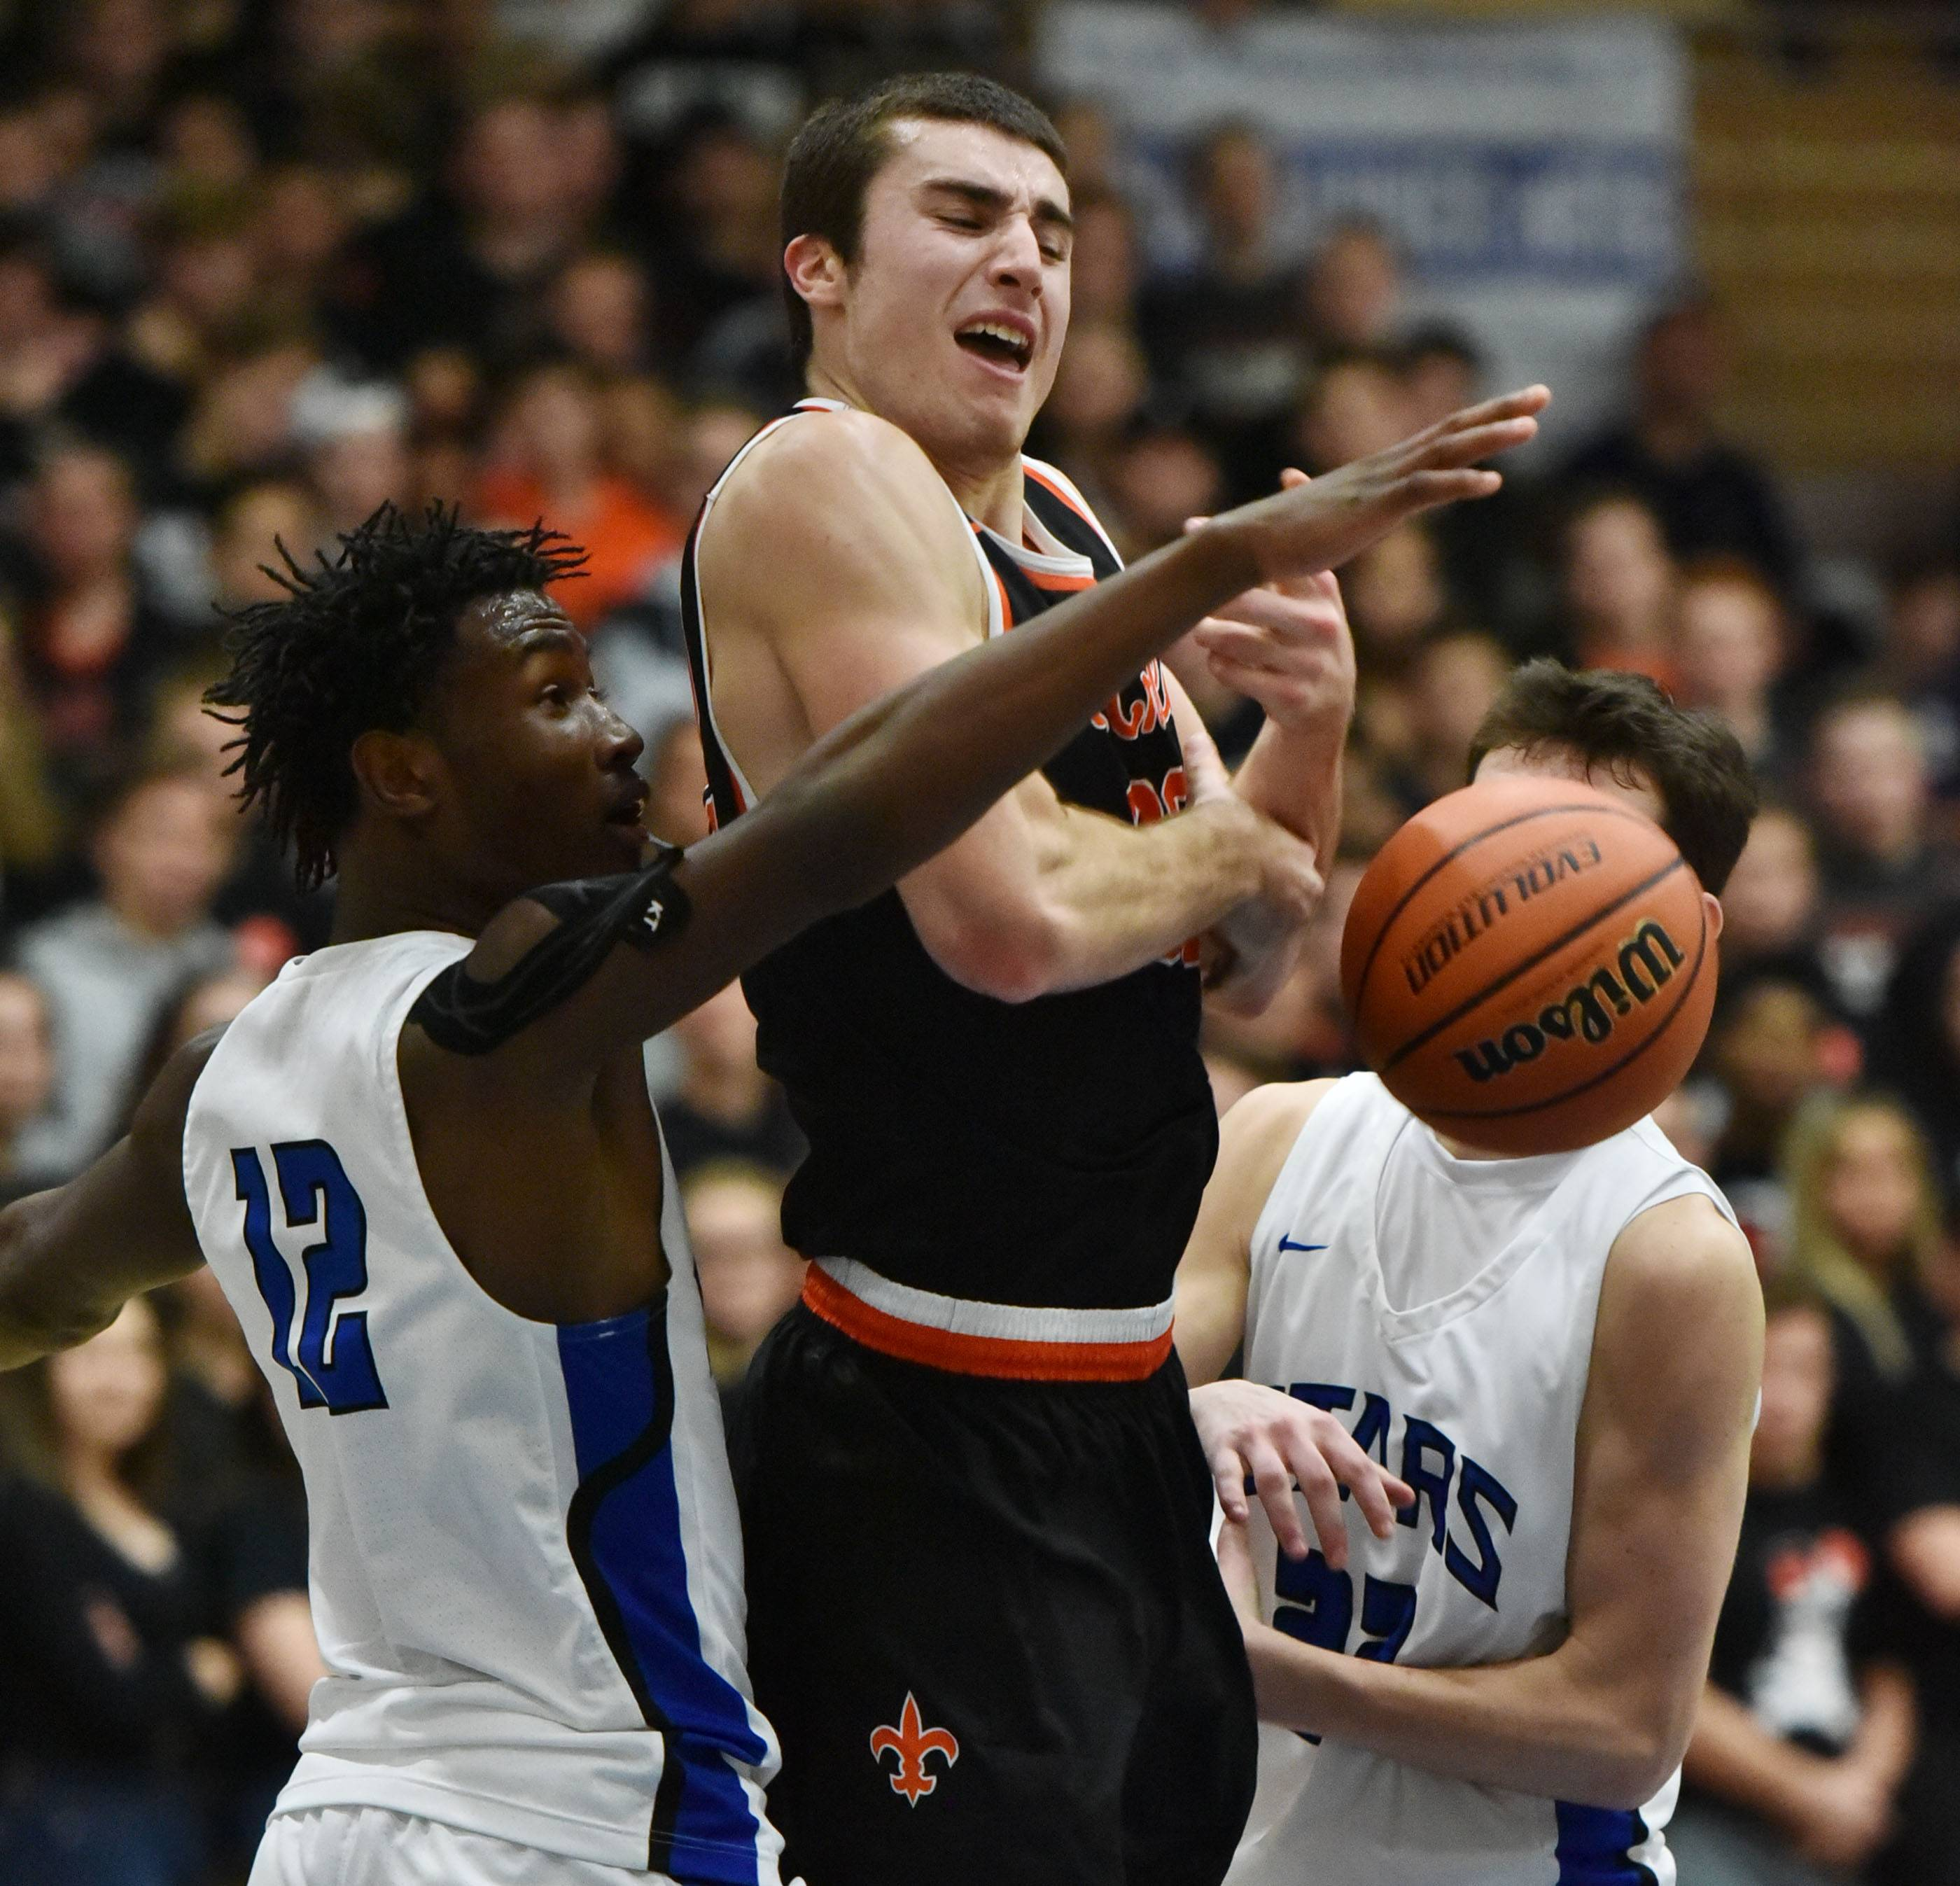 St. Charles East's Justin Hardy loses the ball under the defense of St. Charles North's Tyler Nubin and Cade Callaghan Friday at North High School.